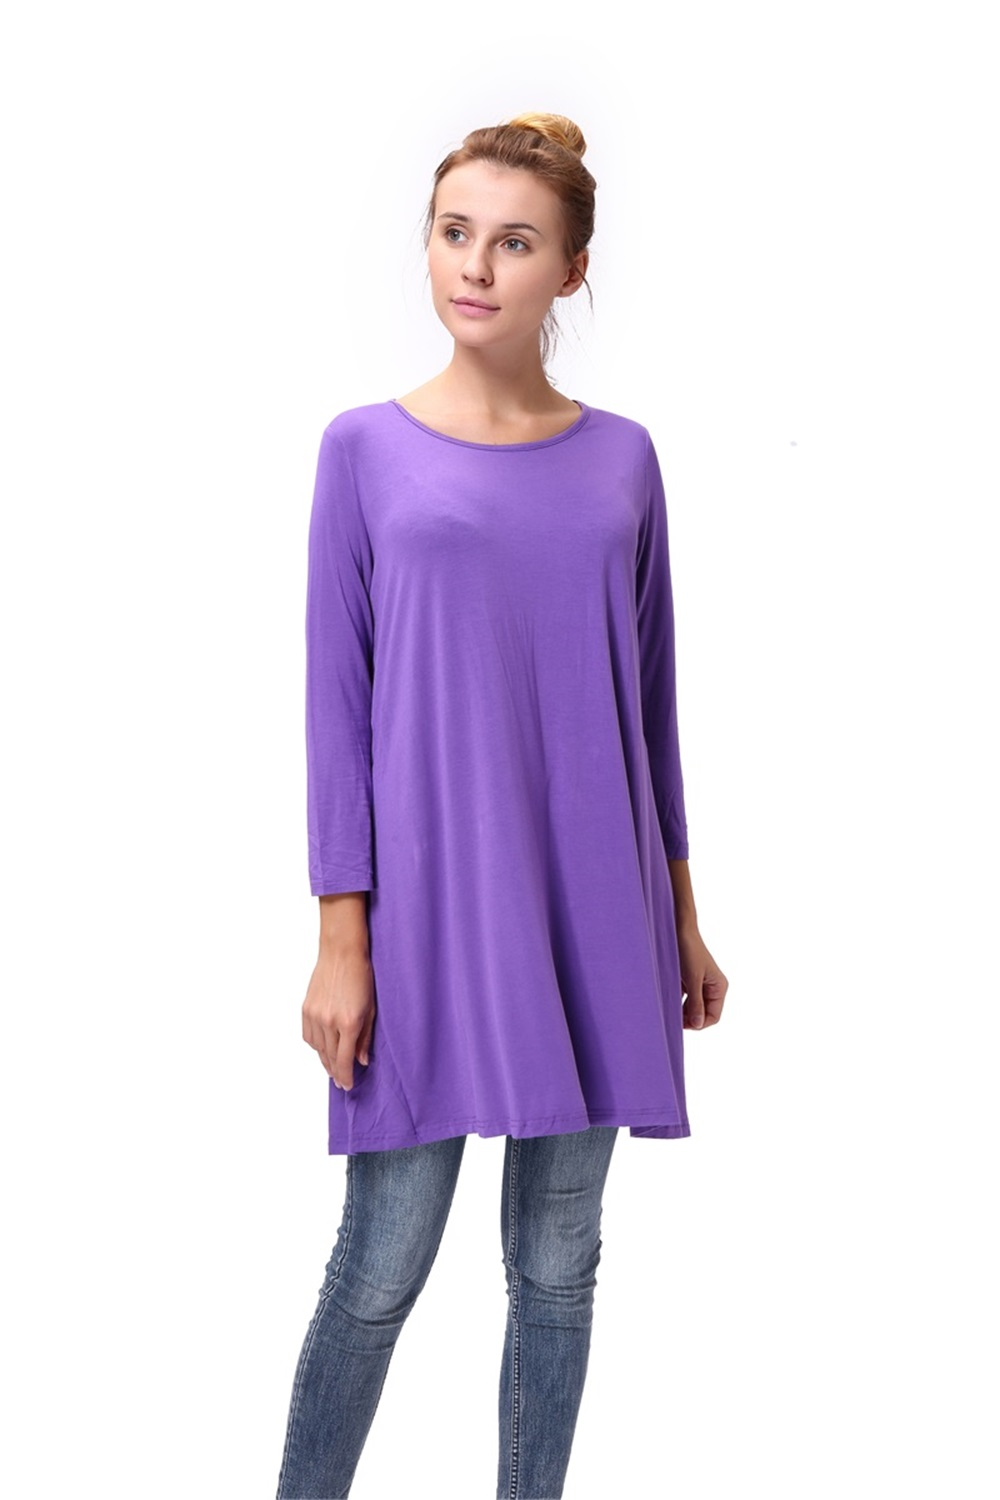 Women-039-s-Long-Tunic-Top-3-4-Sleeve-Dolman-Boat-Neck-USA-Dress-S-M-L-1X-2X-3X-PLUS thumbnail 41